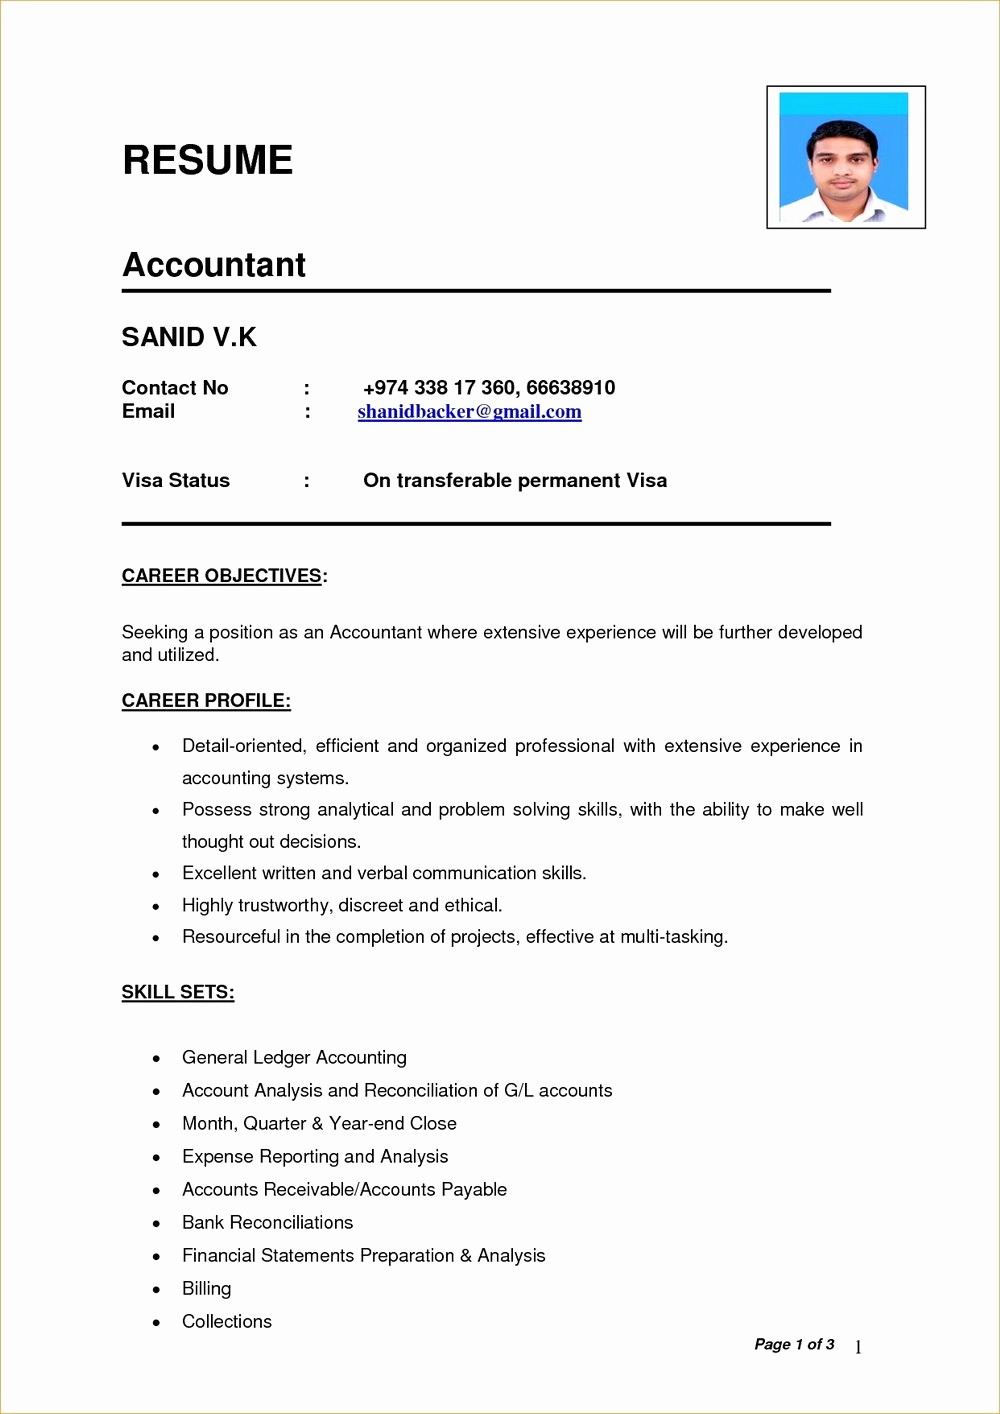 Cv format Samples In Word Elegant Simple Resume Templates for Word Resumes 201